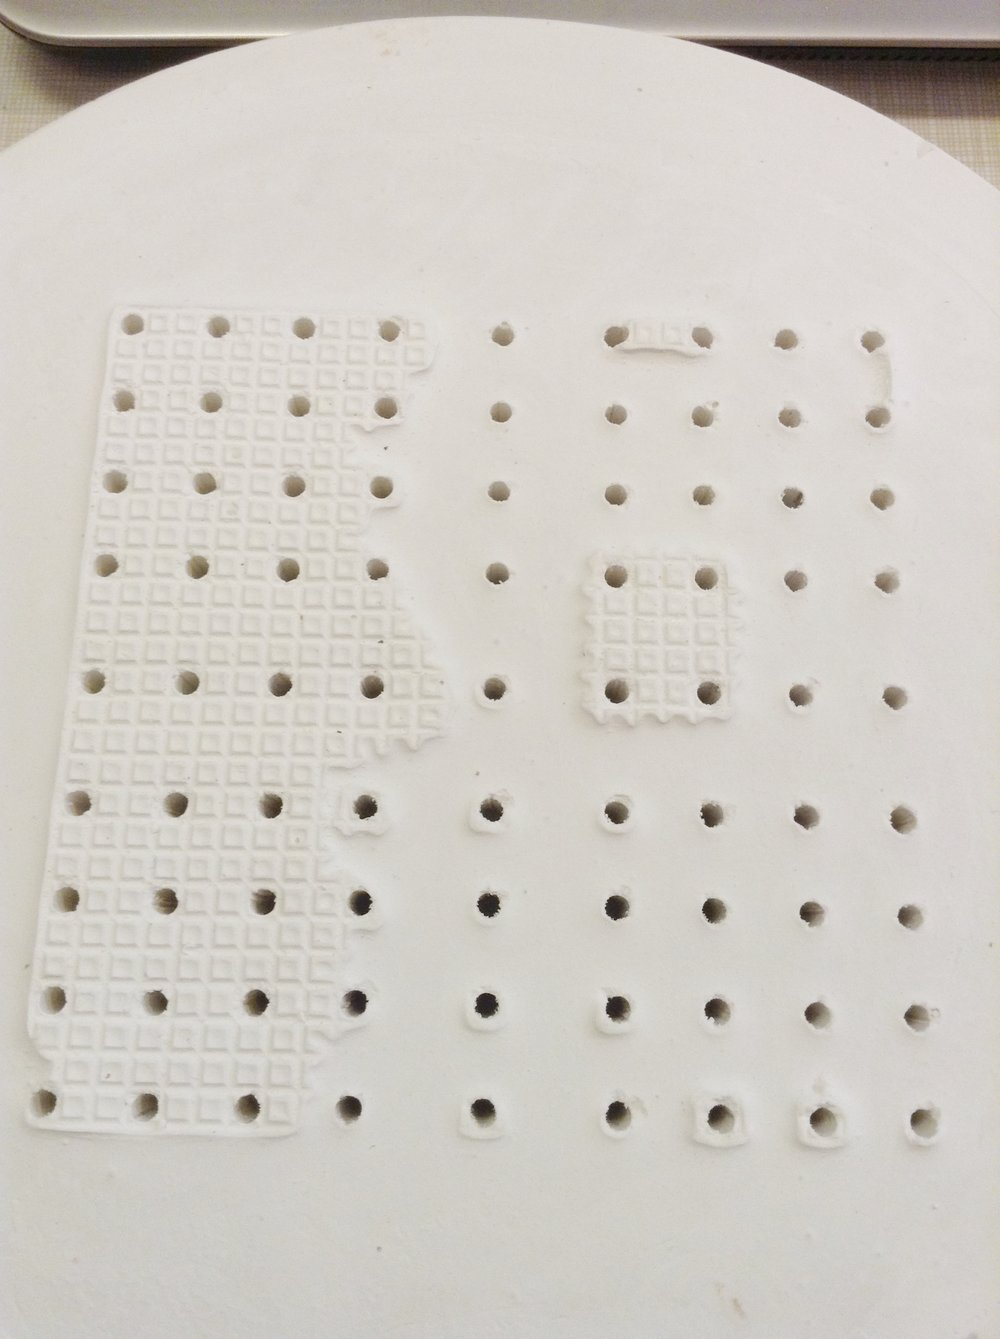 Square array made of plaster. Holes are about 1/2 inch deep to accept rod material.